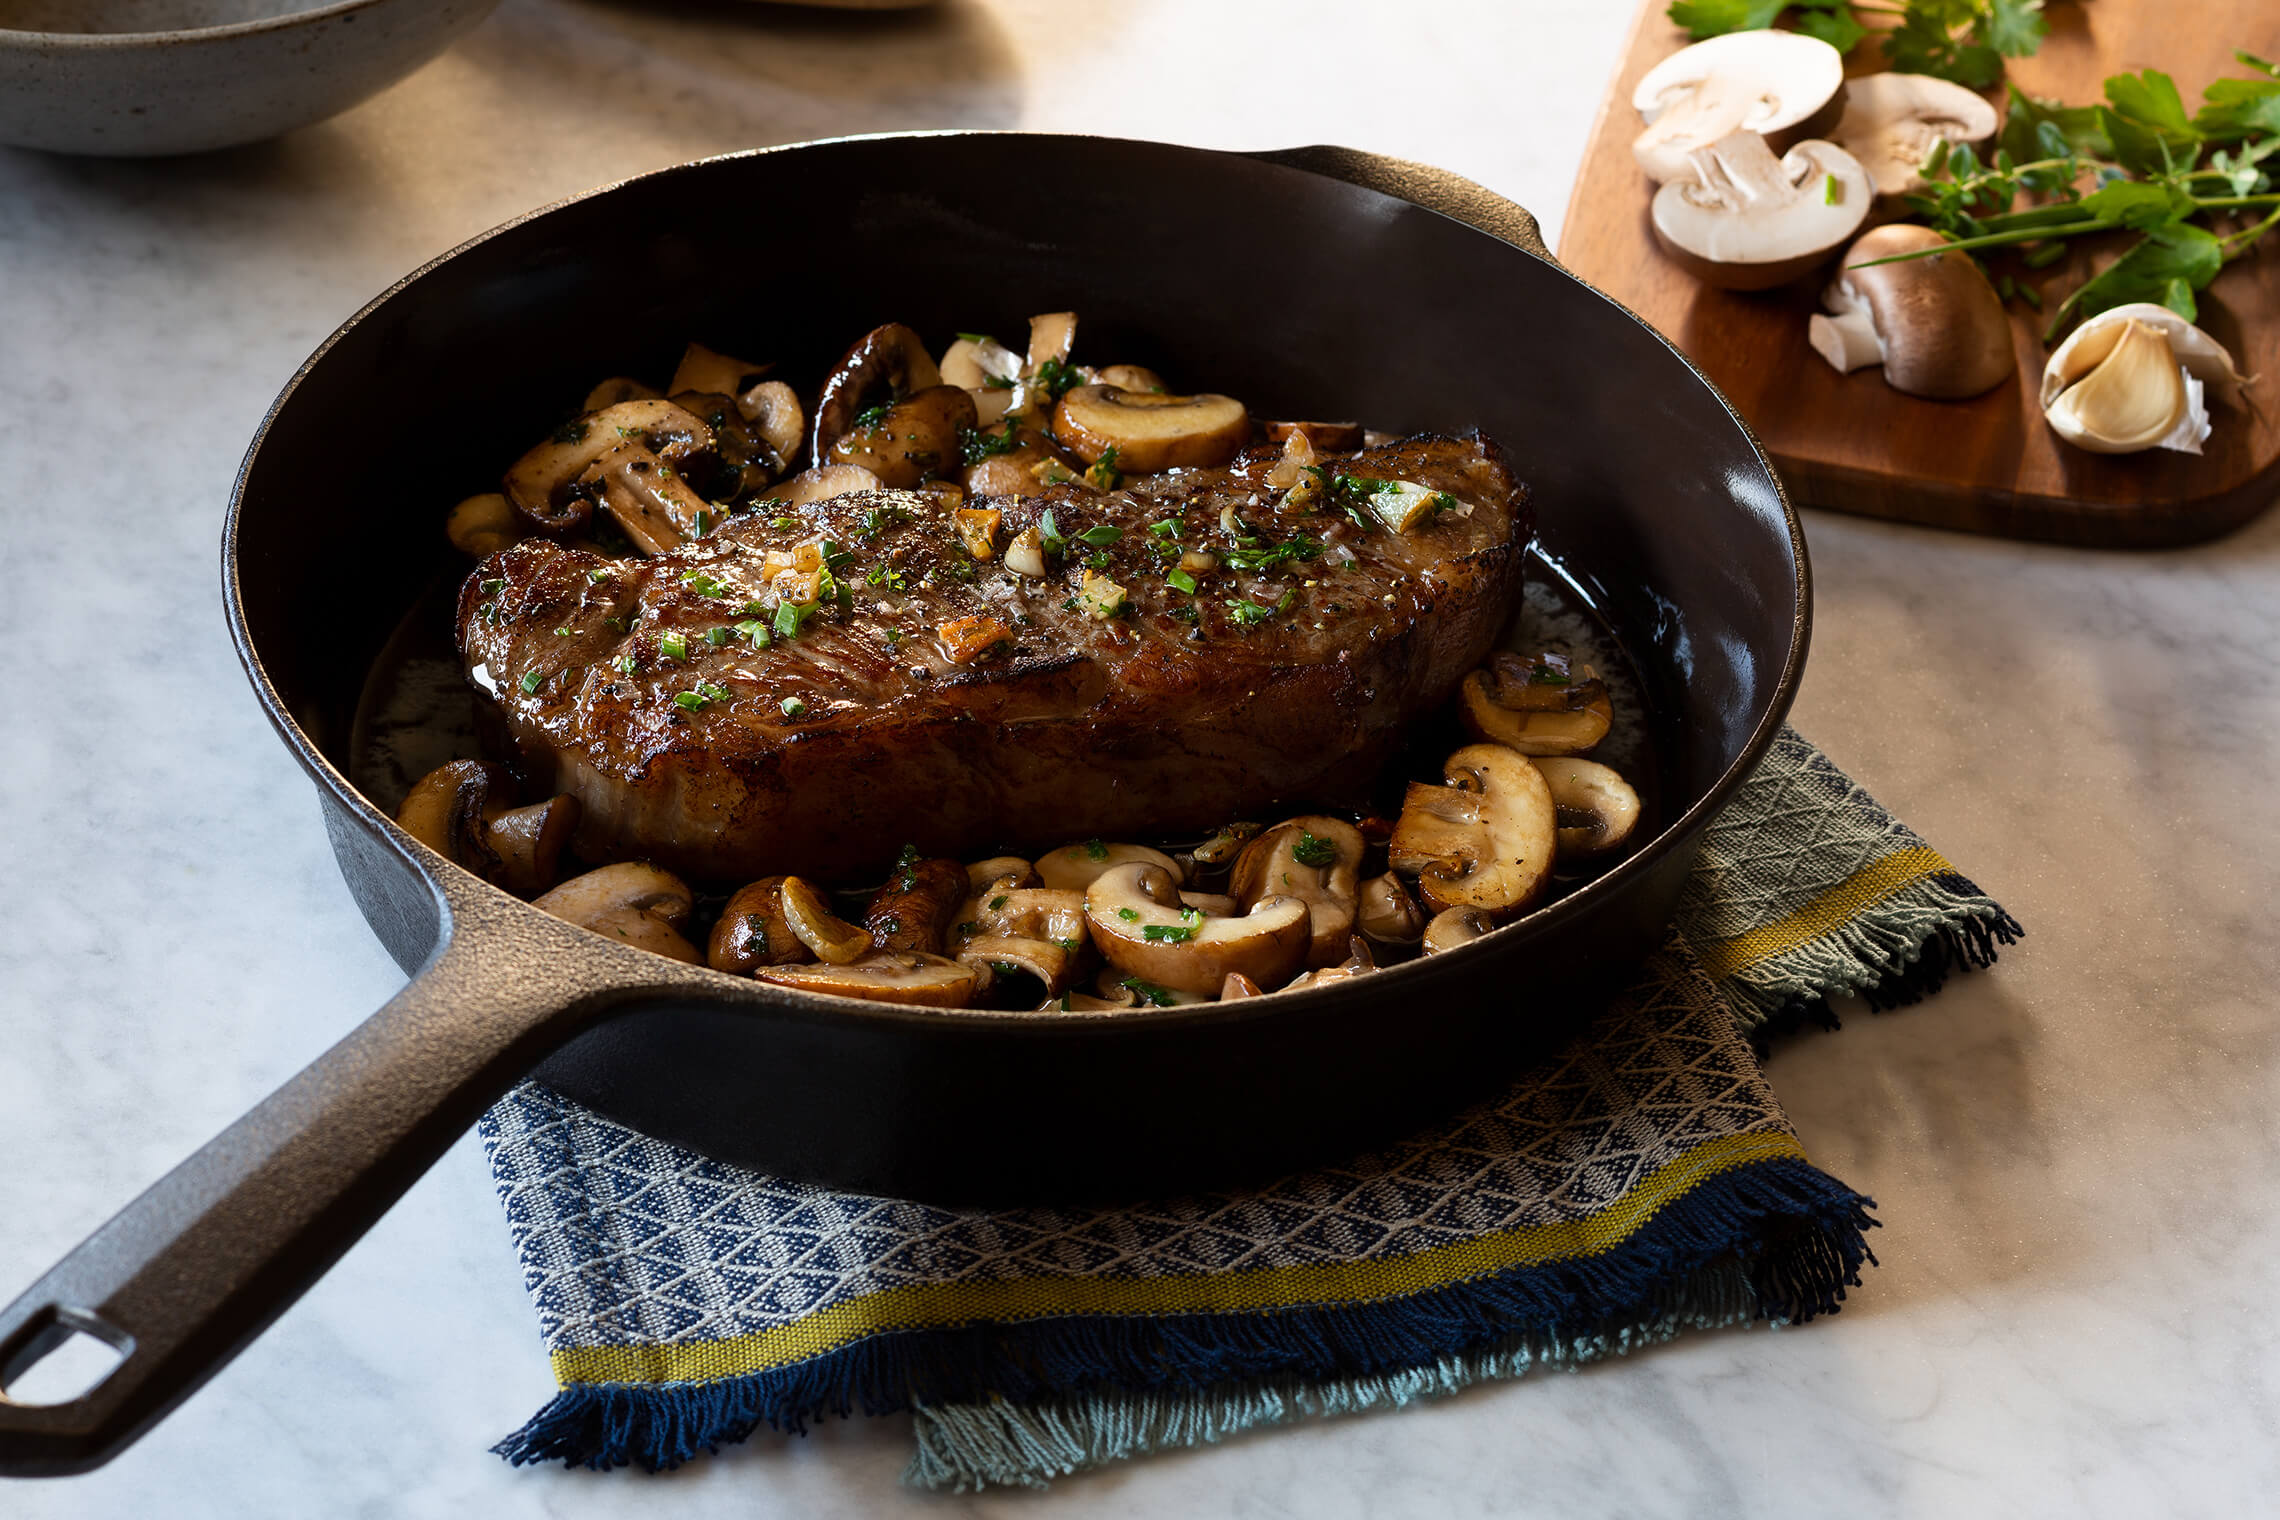 Pan Seared Steak With Garlic Herb Butter And Mushrooms Challenge Dairy